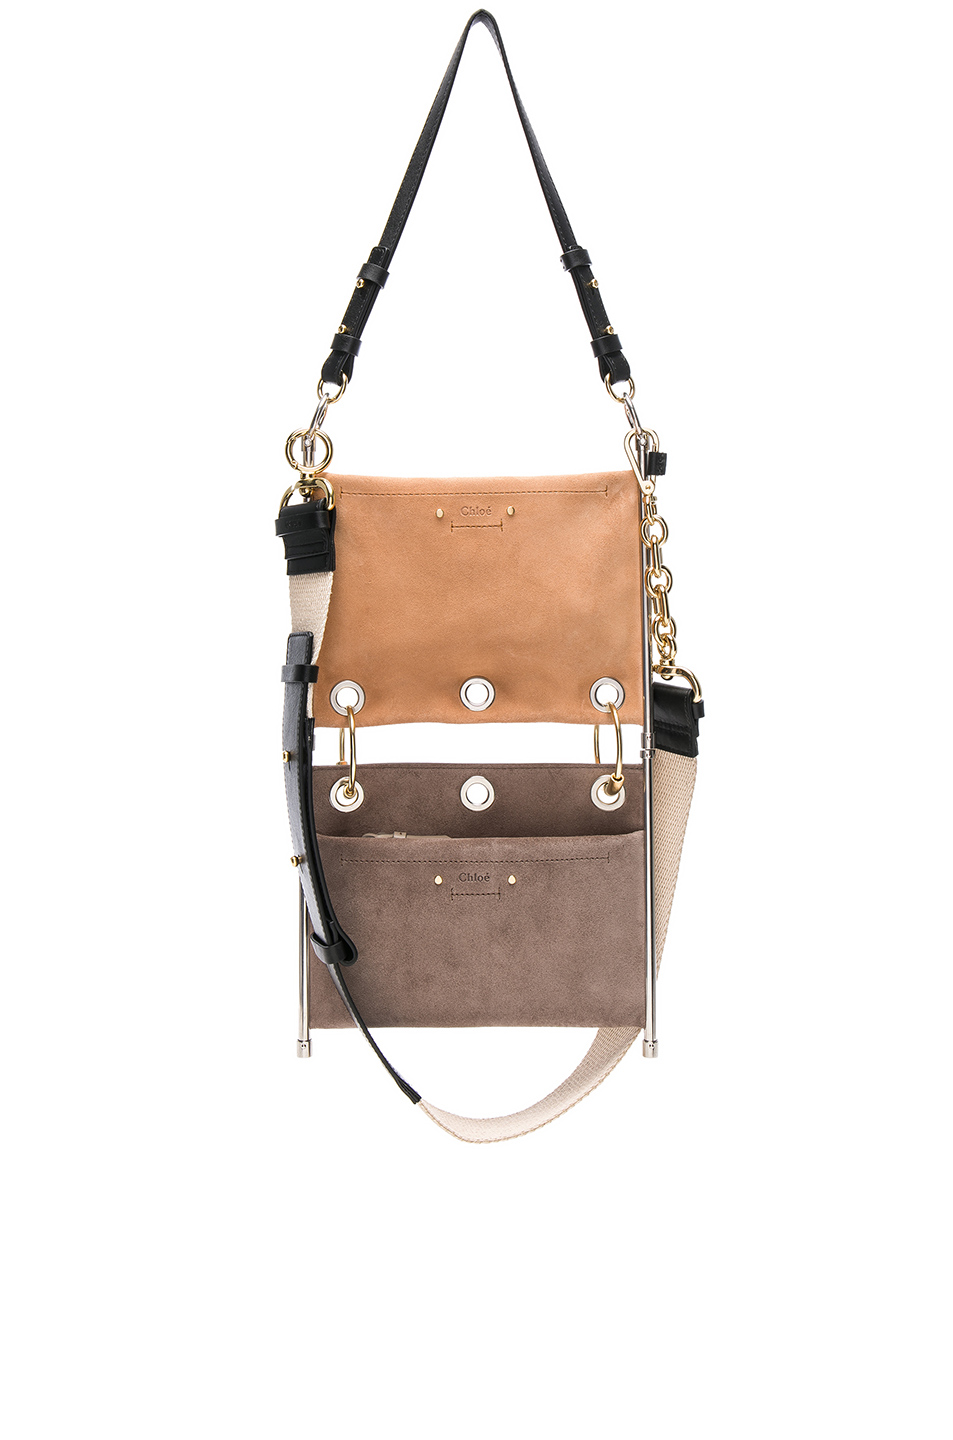 CHLOE Small Roy Calfskin & Suede Double Clutch - $1,750